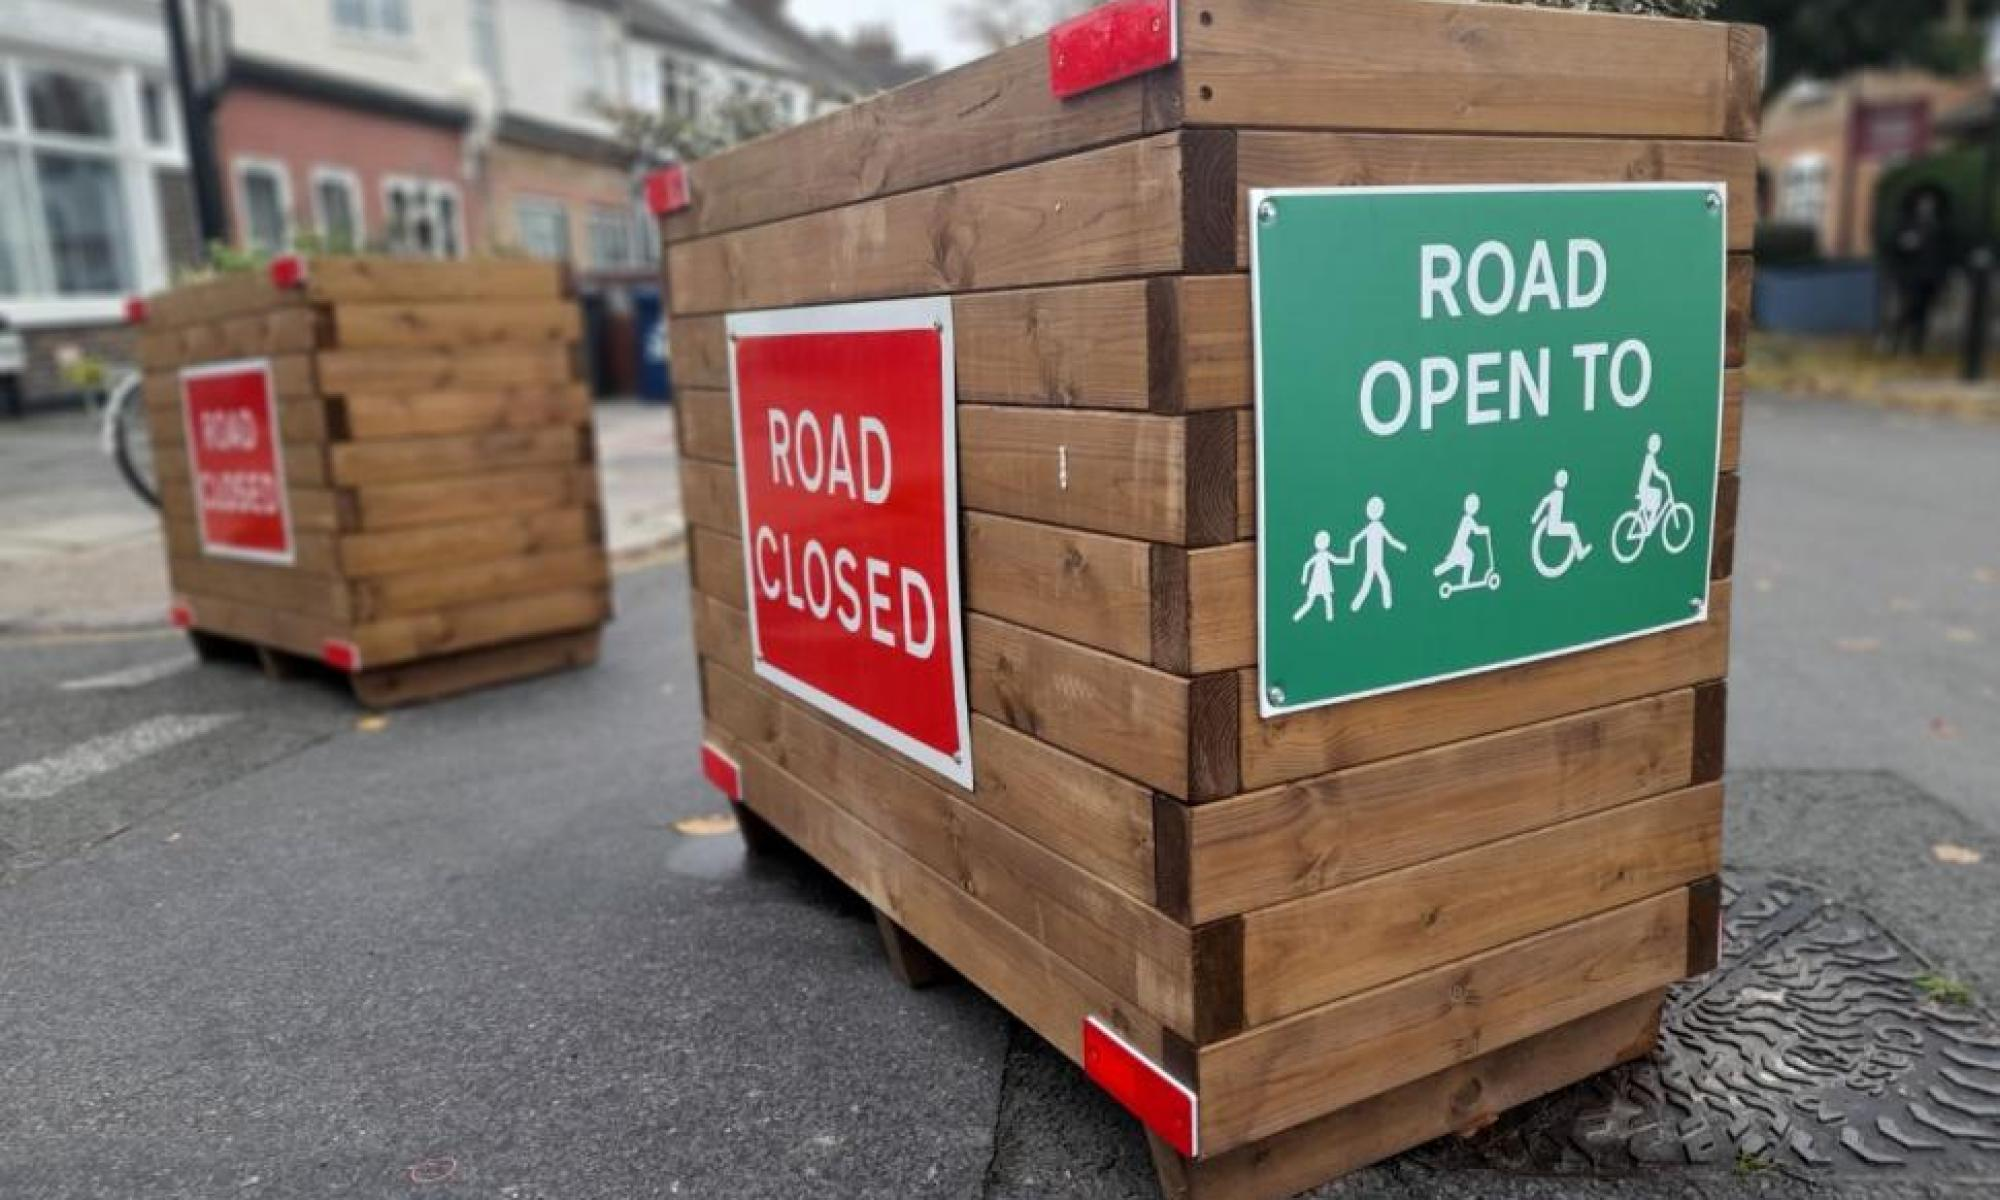 Parliament to debate Low Traffic Neighbourhoods this afternoon